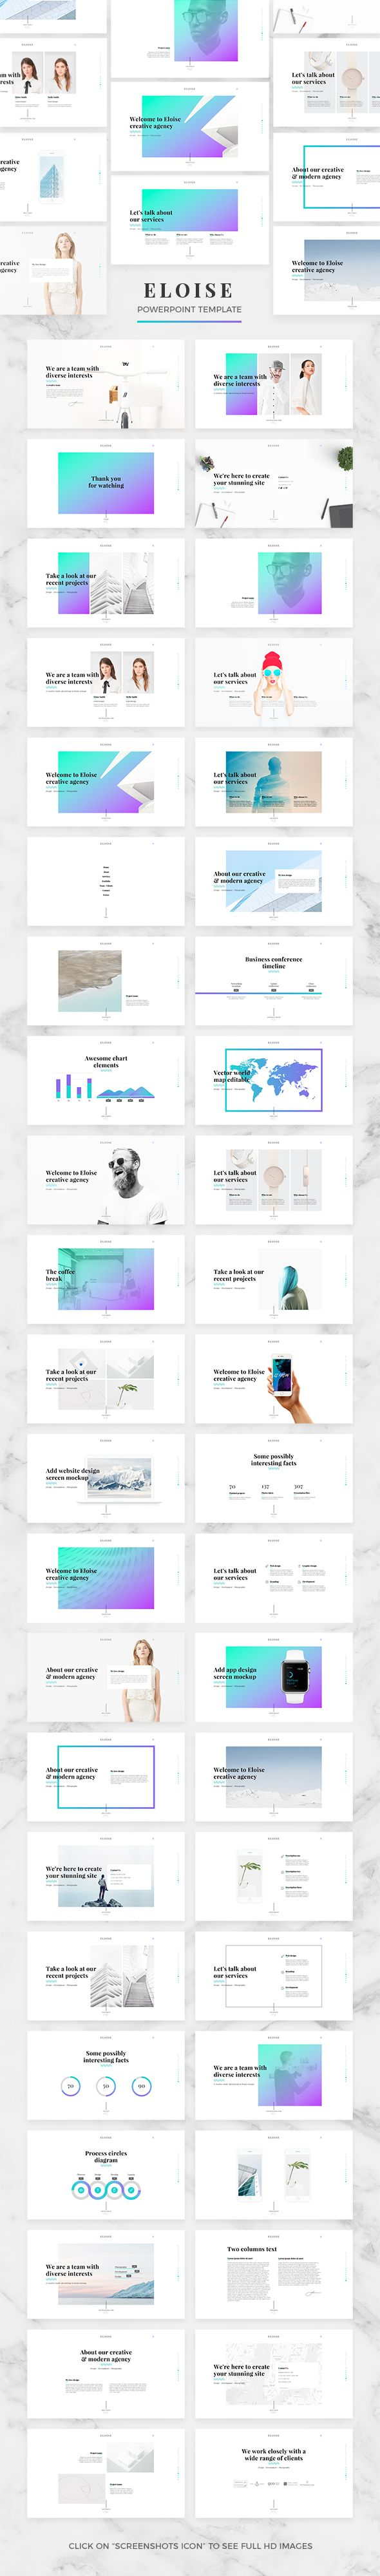 Eloise - Creative PowerPoint Template. Download: https://graphicriver.net/item/eloise-creative-powerpoint-template/19419277?ref=thanhdesign